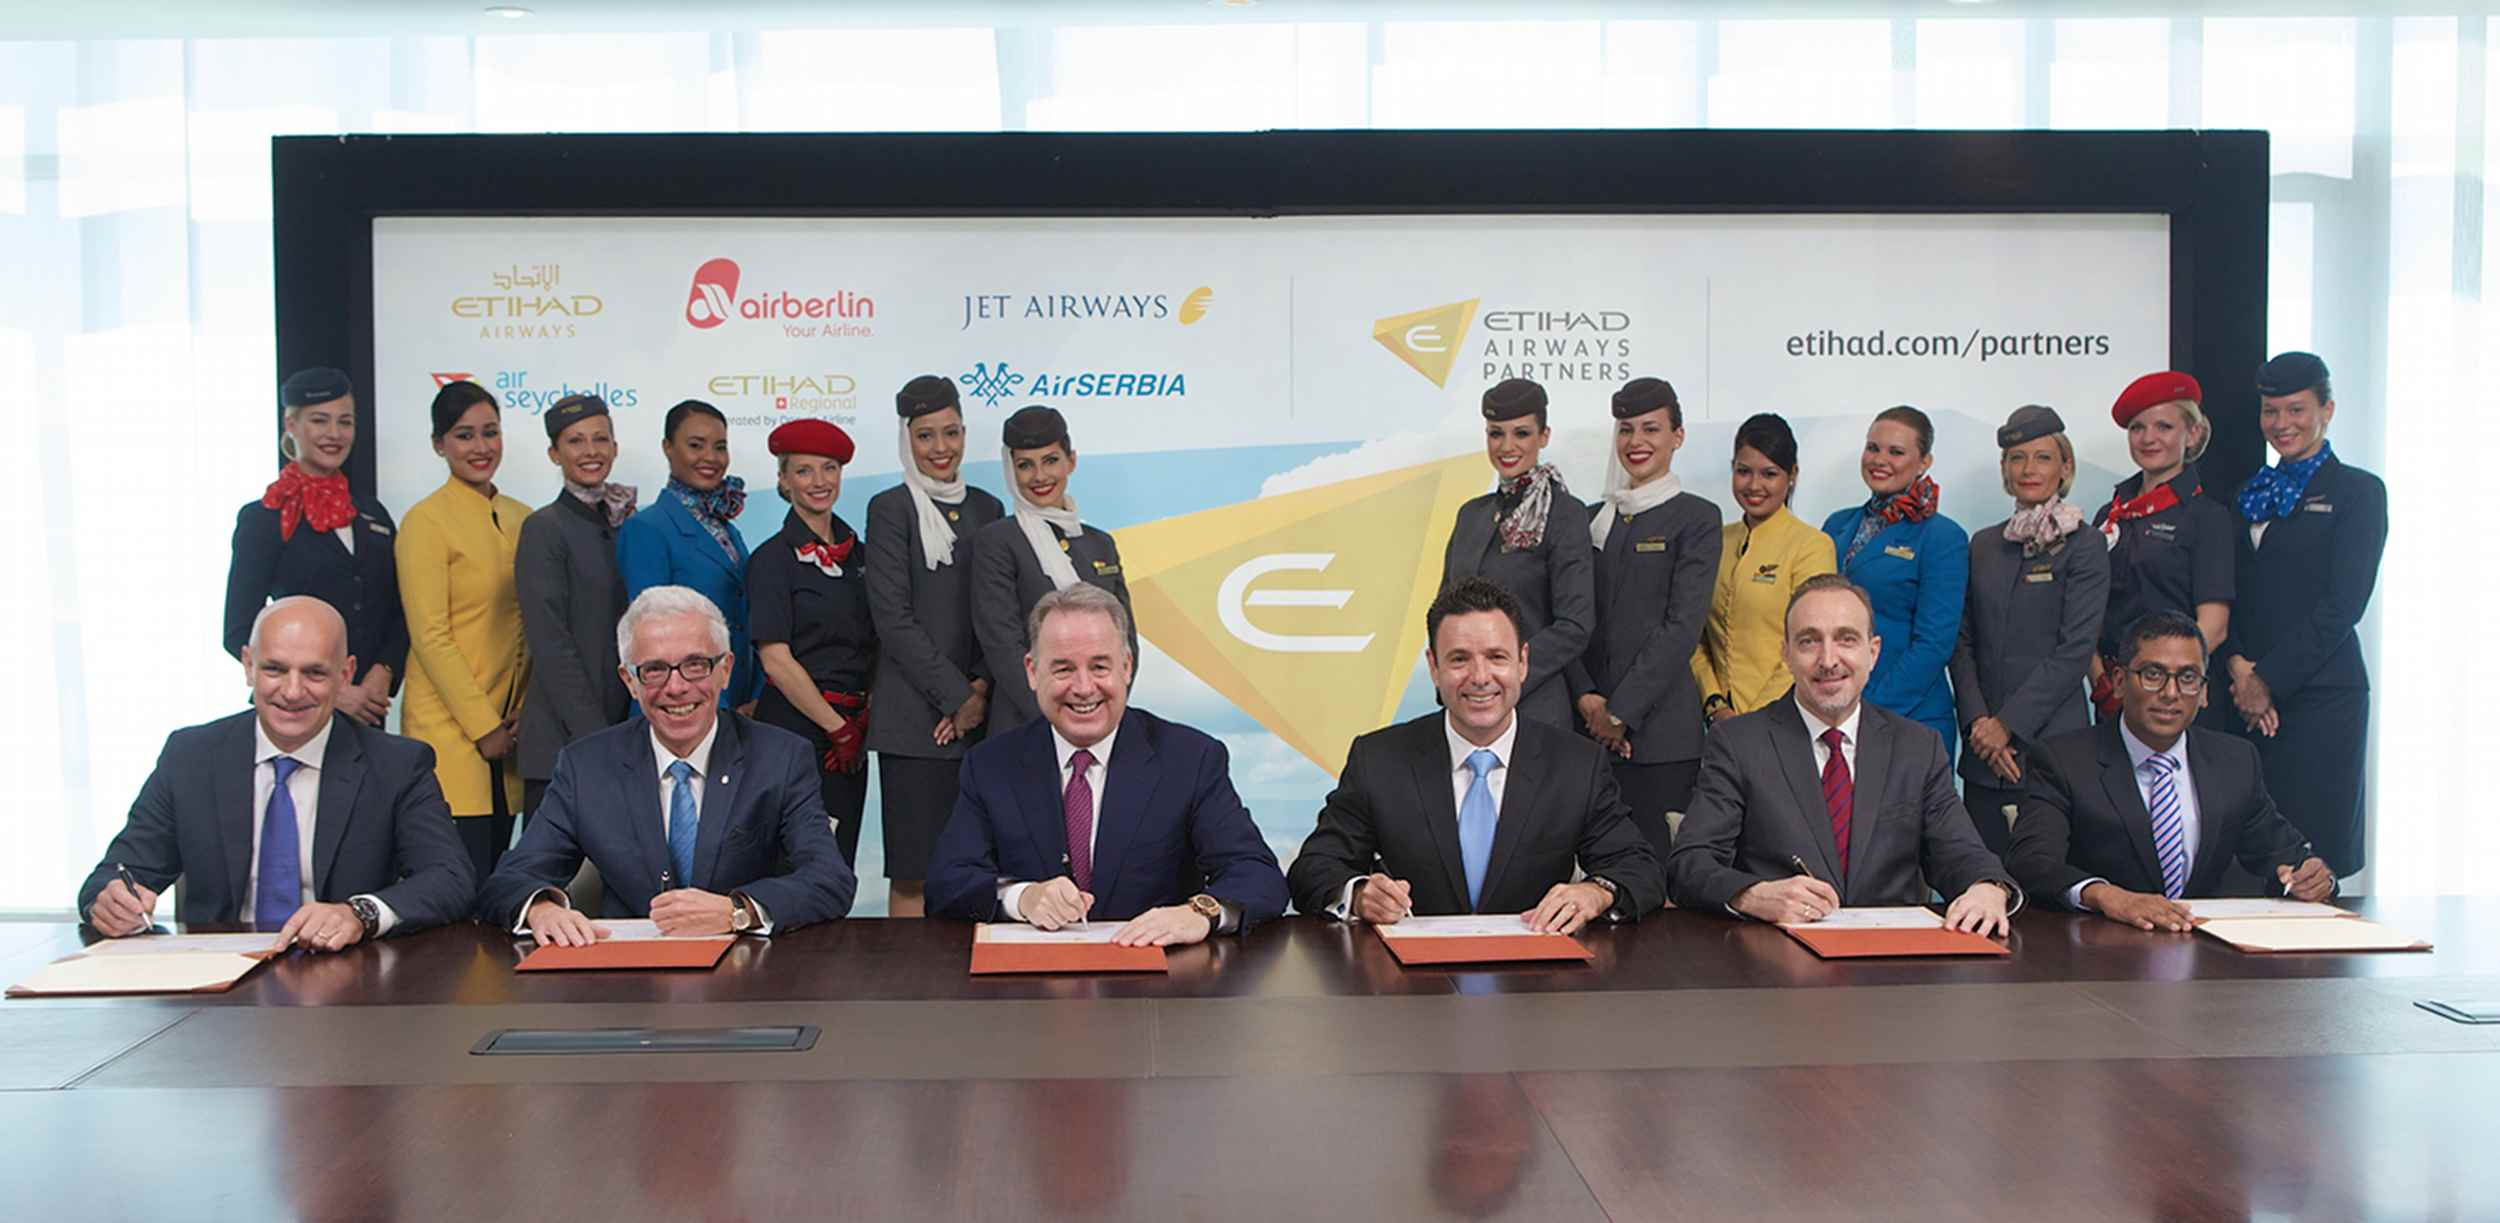 Etihad Airways_partners_002